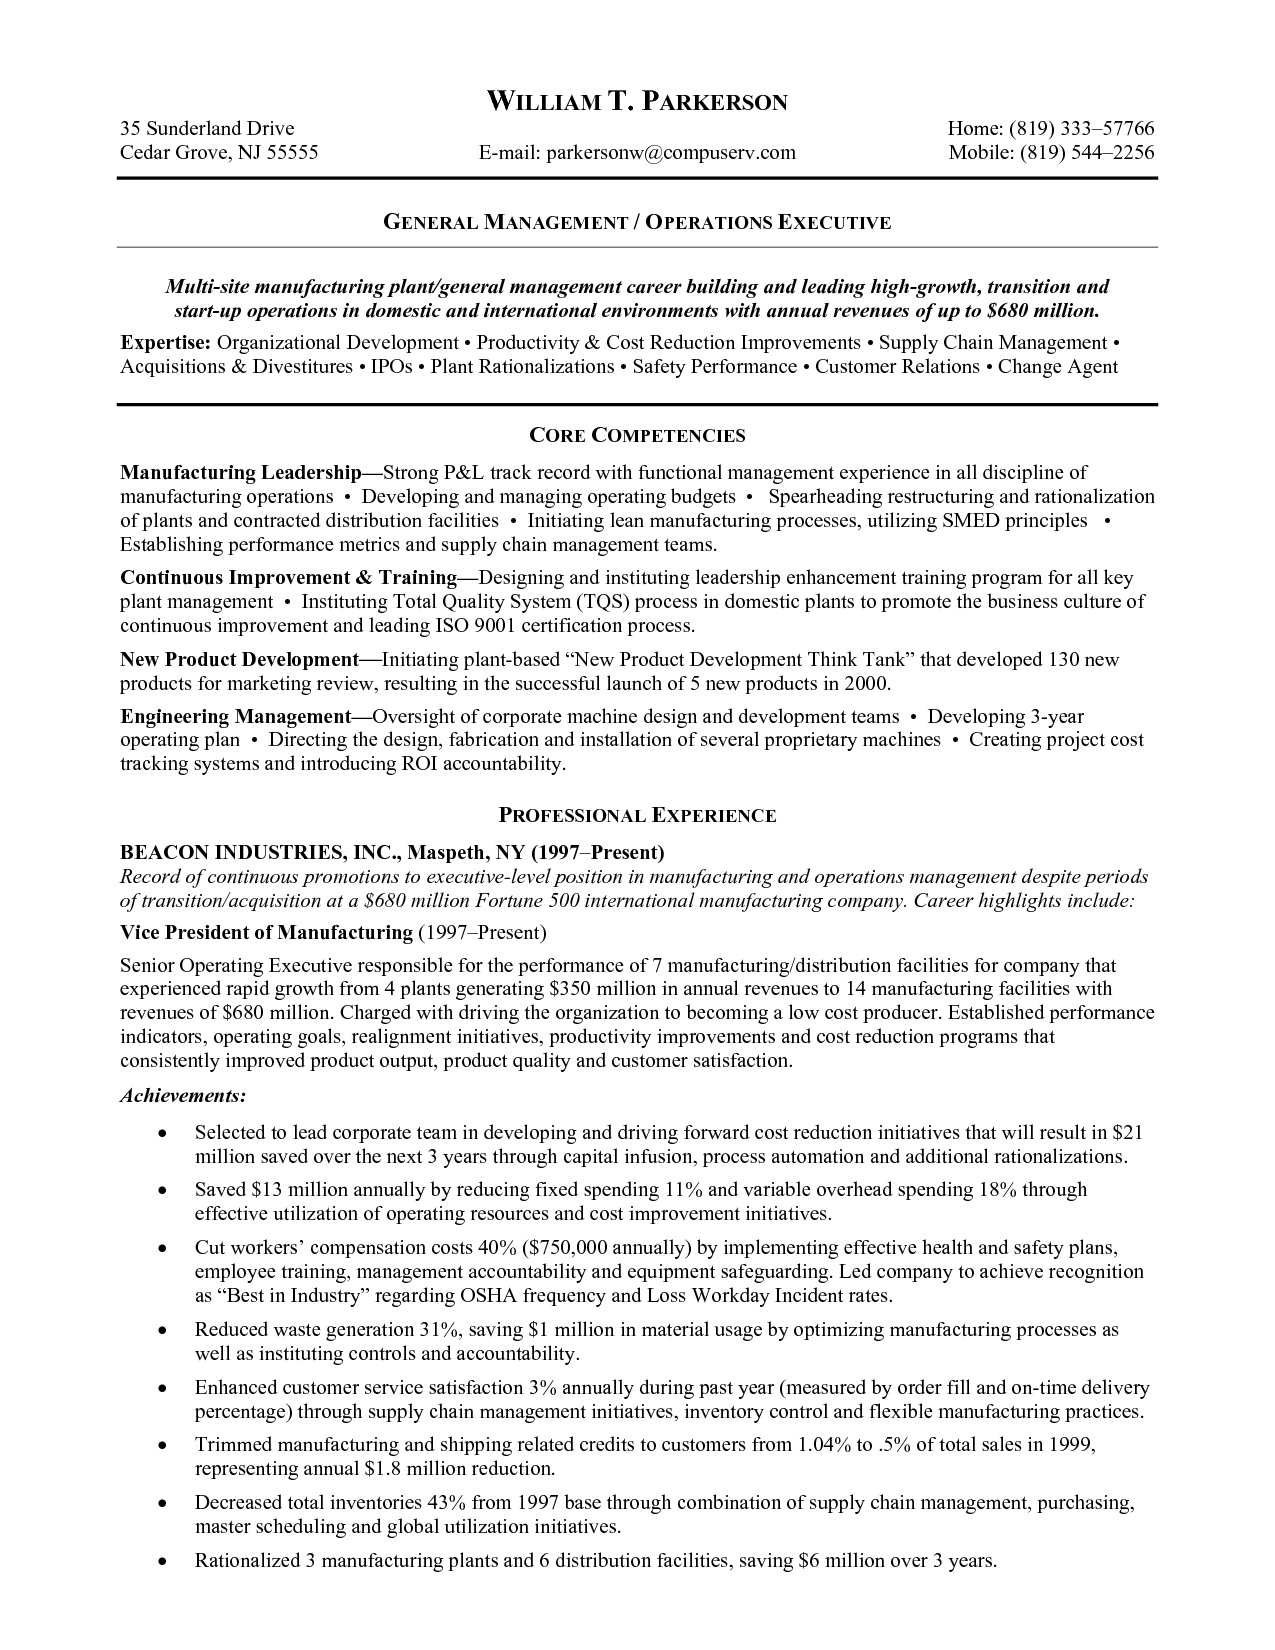 Job Objective On Resume General Manufacturing Resume Samples Objective Examples Free Edit